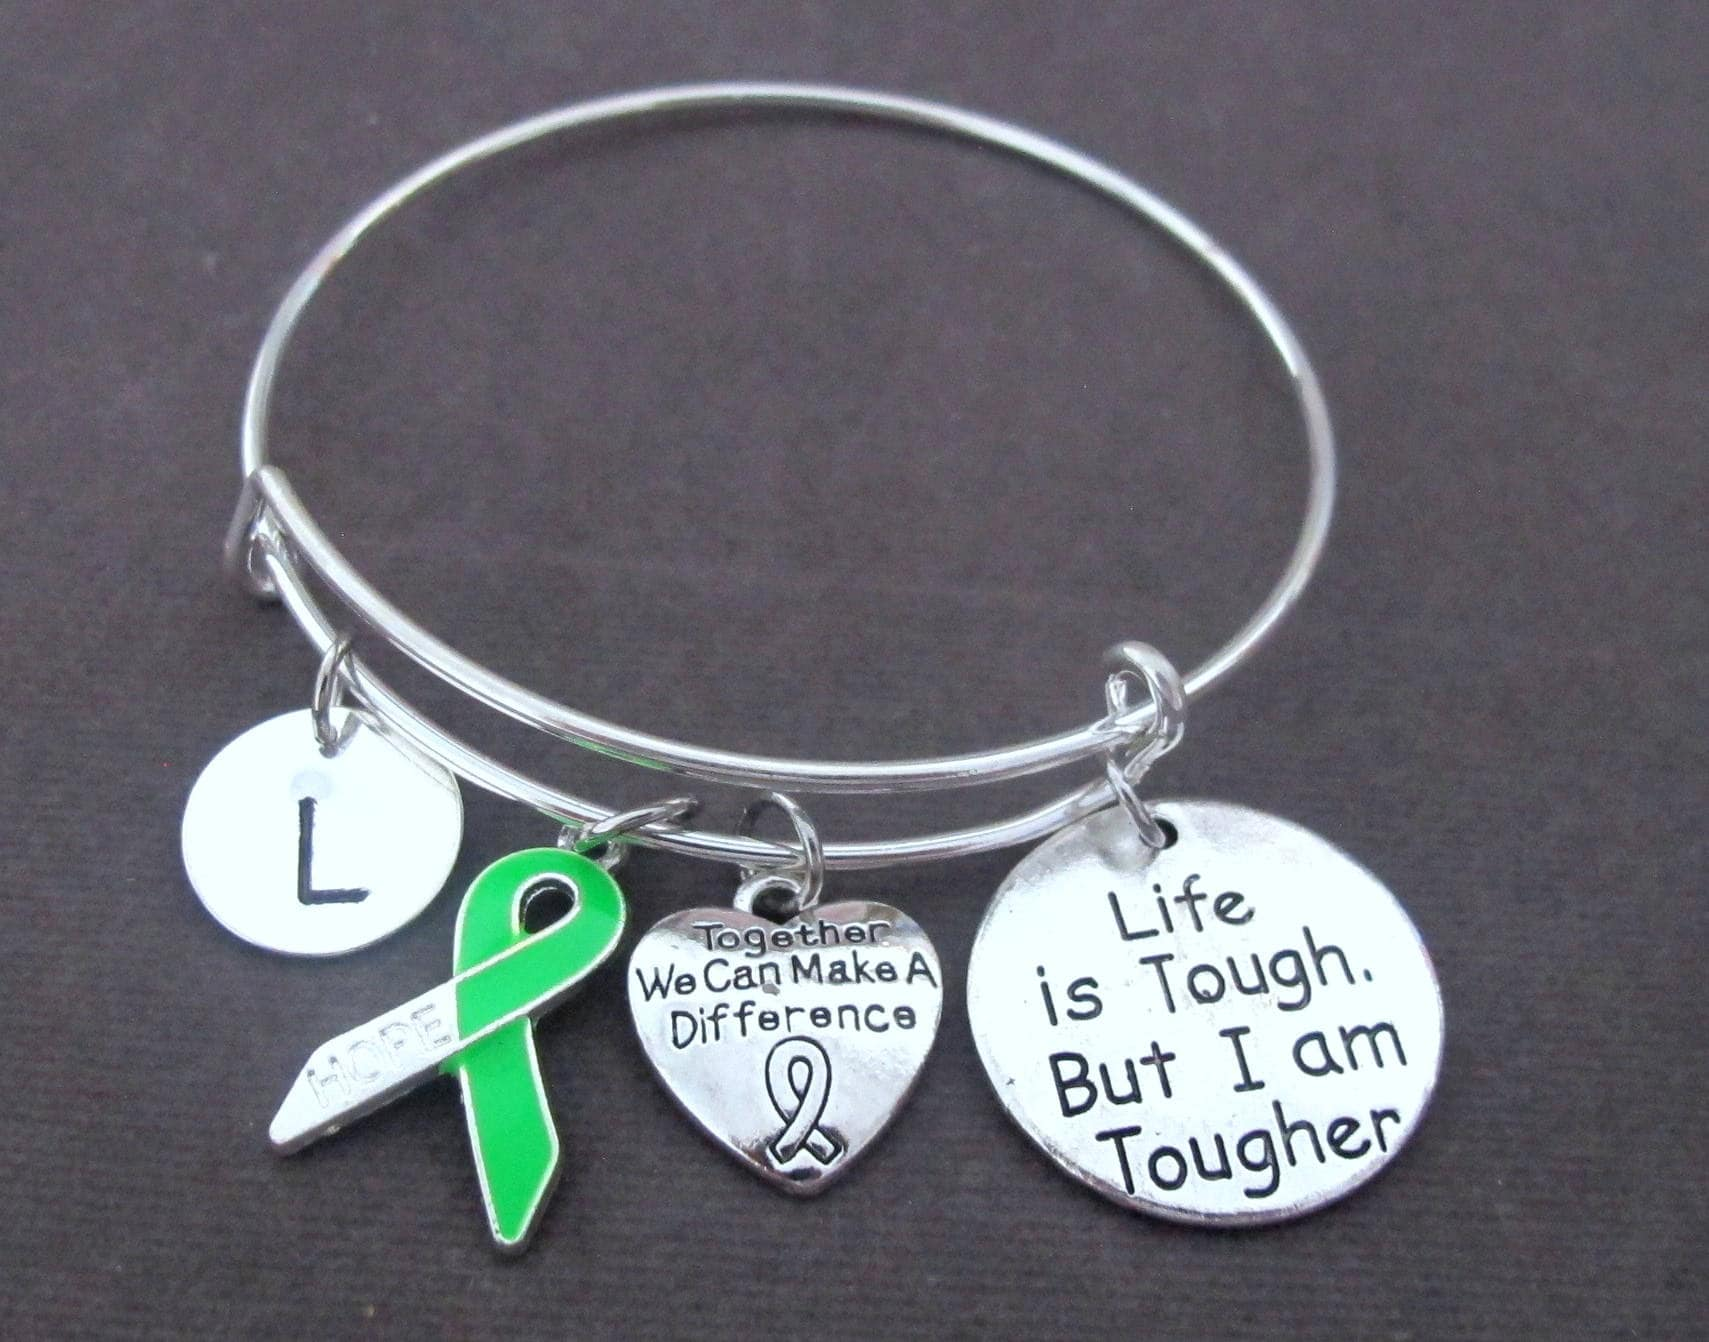 mental lyme awareness bracelets on health cheap guides shopping deals lymphoma disease lime muscular bracelet line at support green quotations get find dystrophy